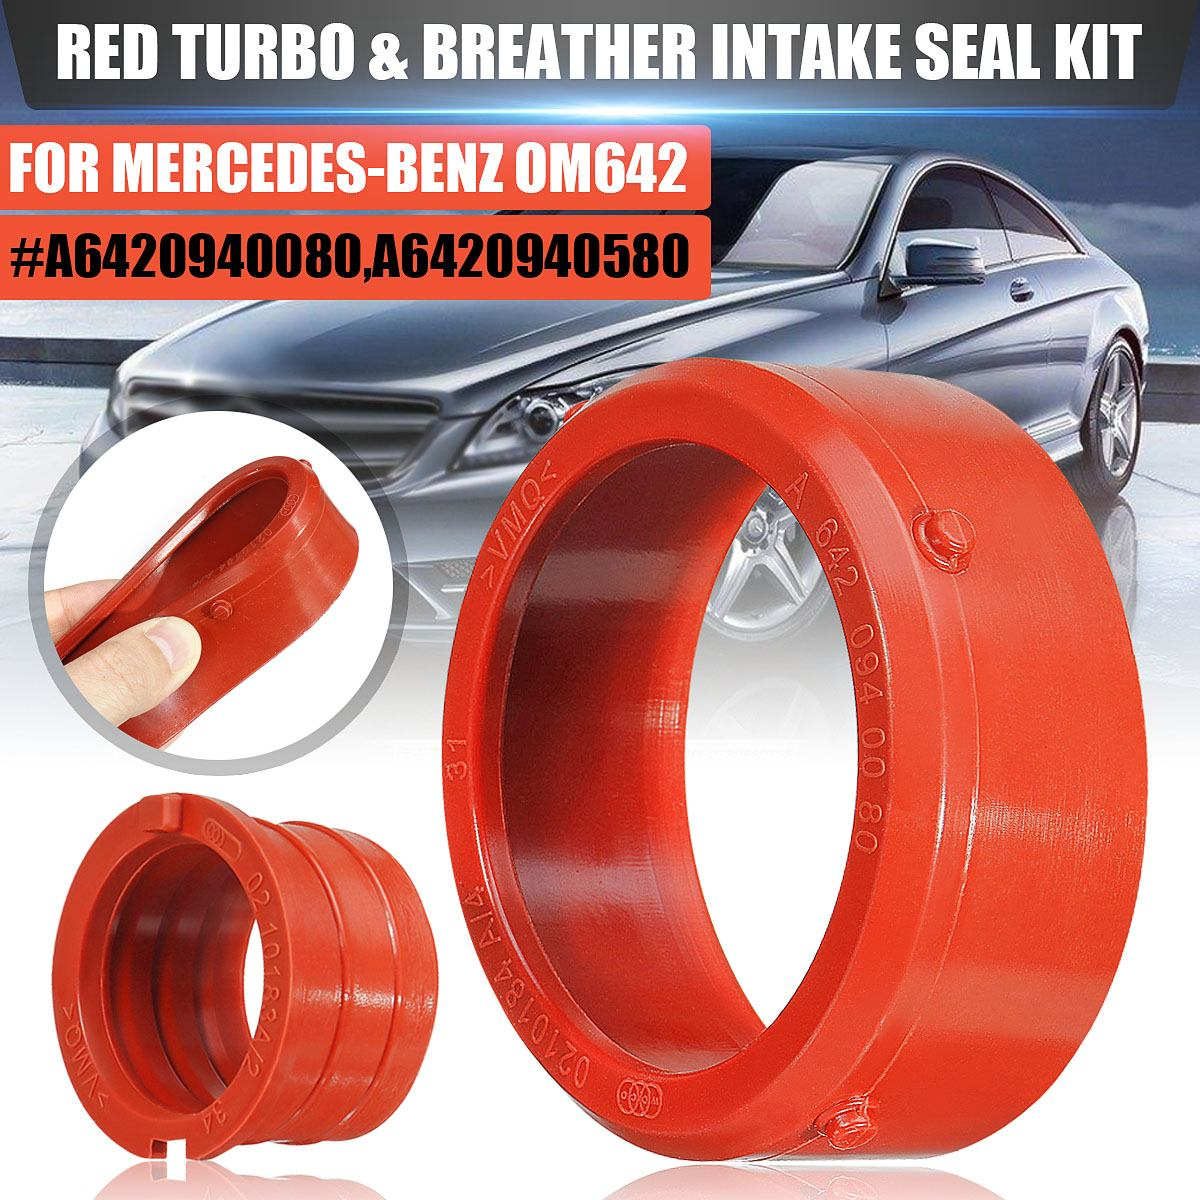 Car engine Rubber Turbo & Breather Intake Seal Kit Fit for Mercedes-Benz <font><b>OM642</b></font> #A6420940080,A6420940580 Auto Engine Accessories image